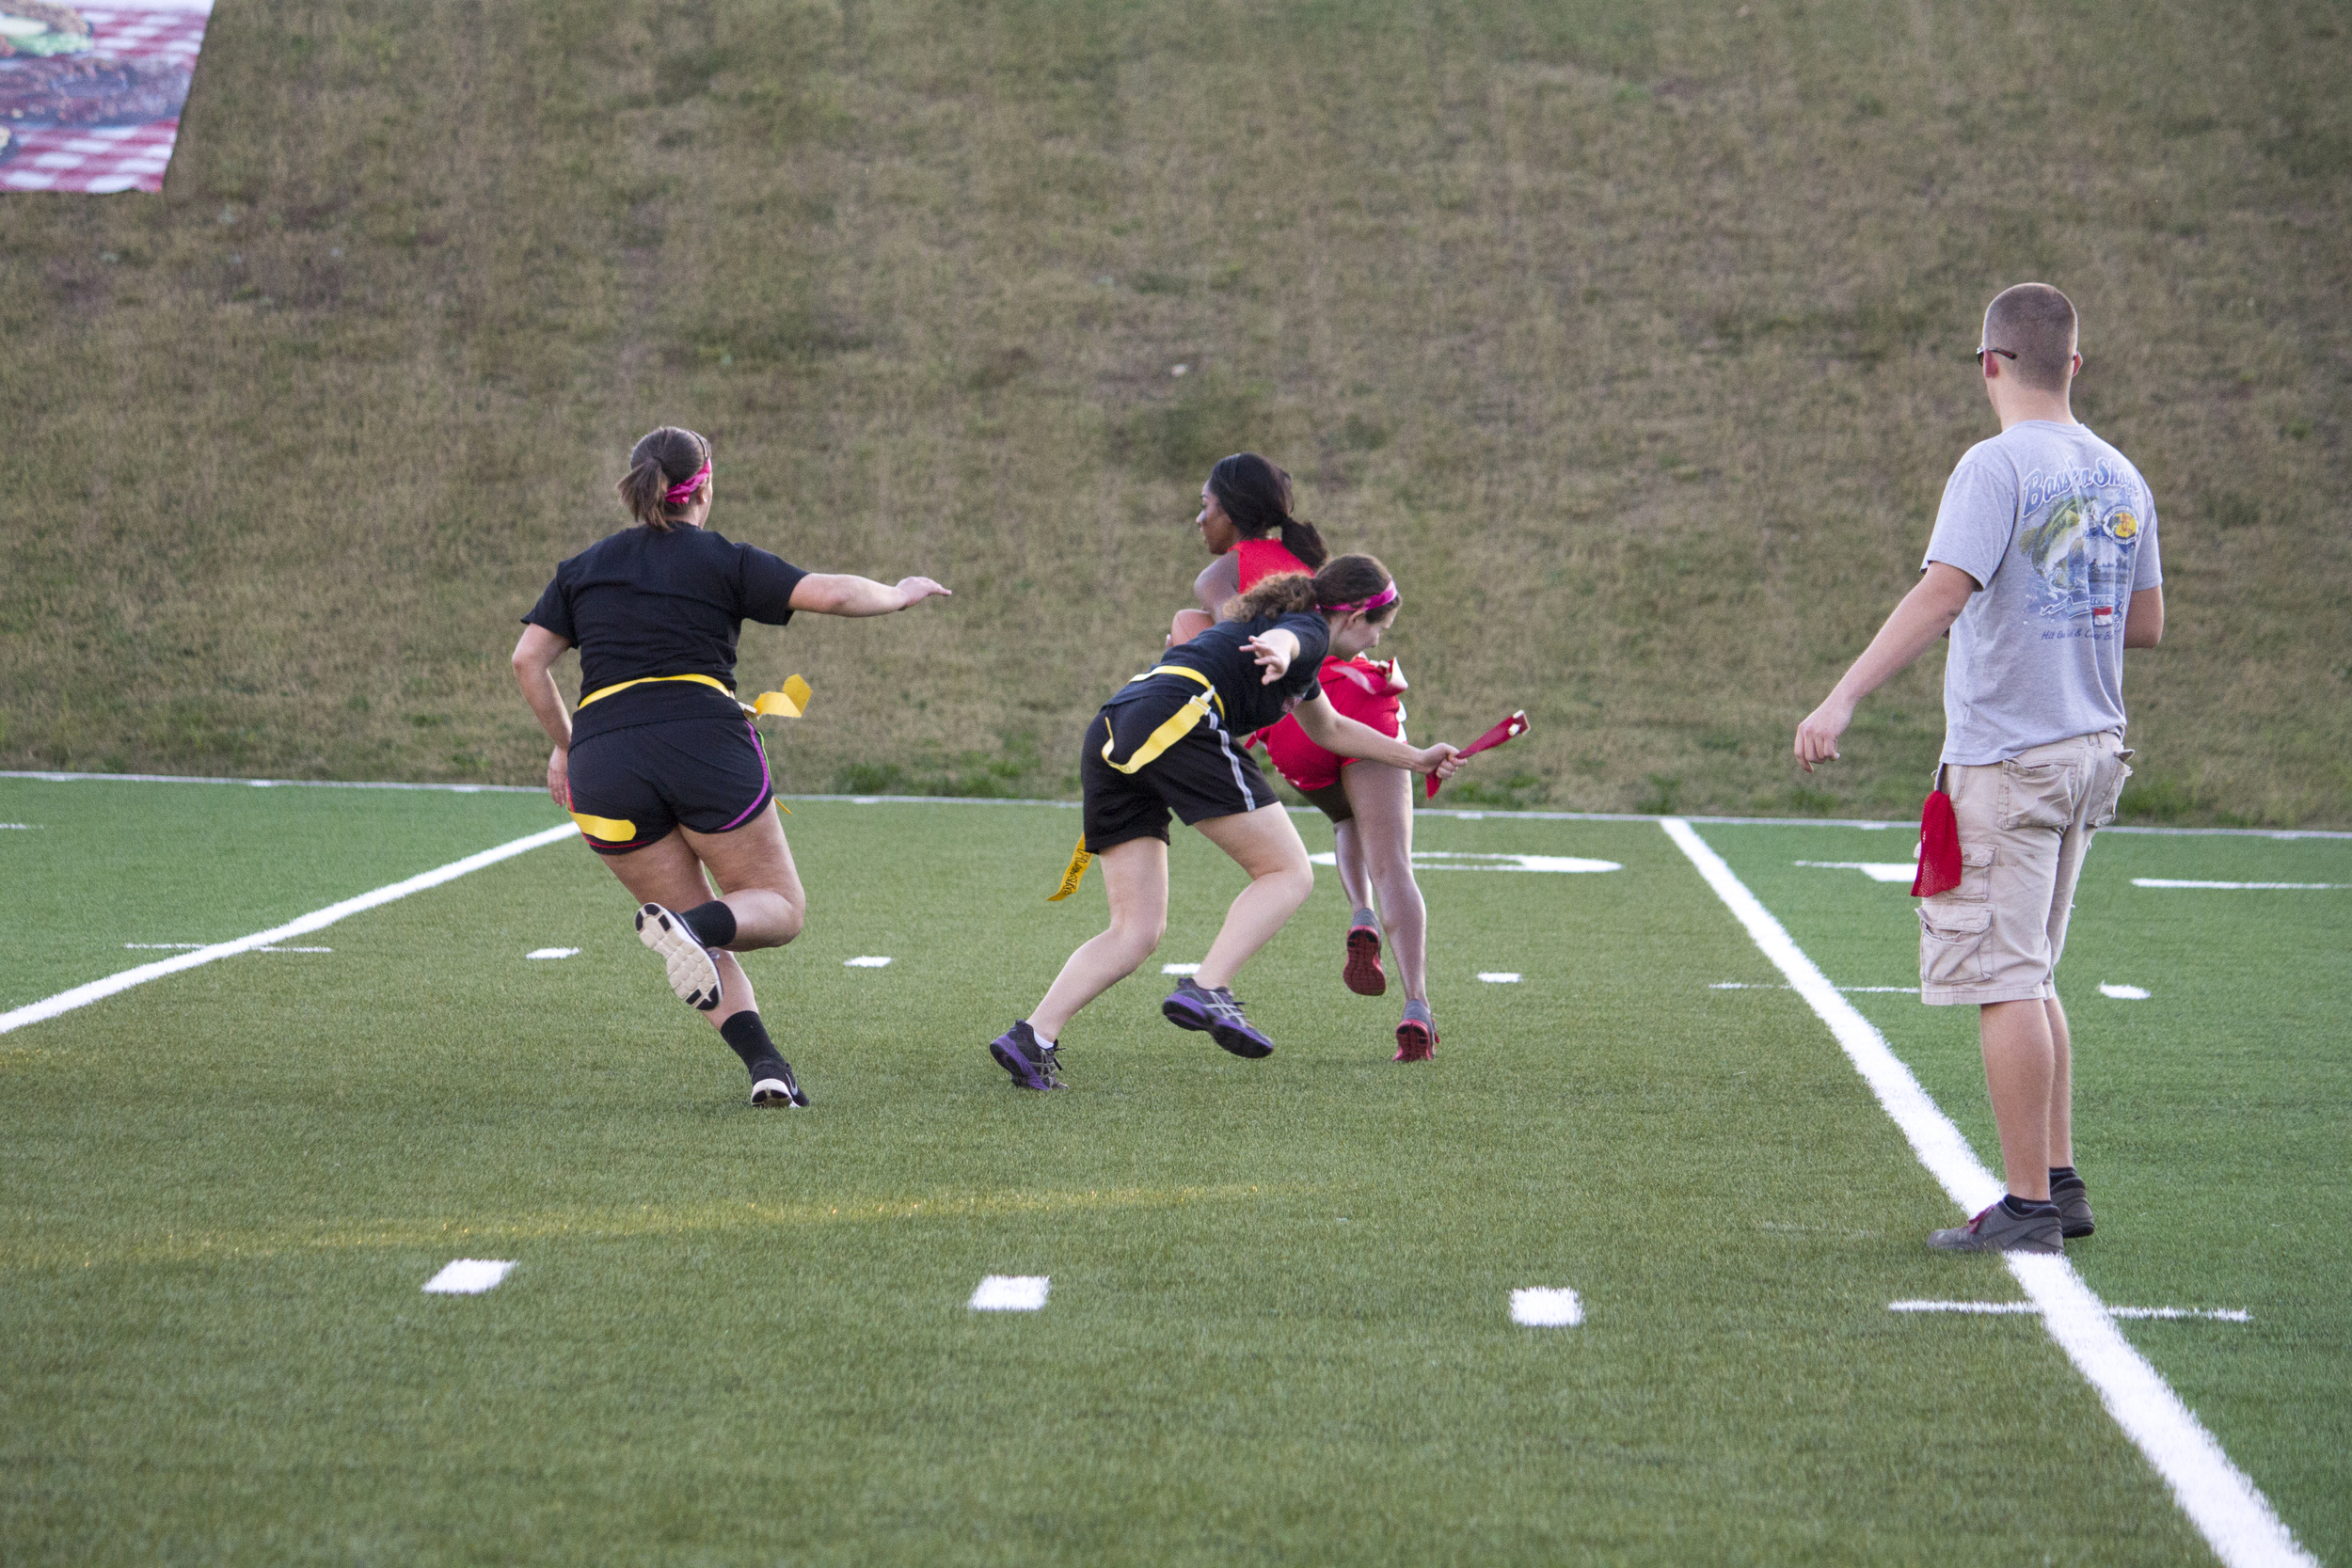 Junior Rachel Alley pulls the flag and snuffs out the Senior team's play before it can even begin.